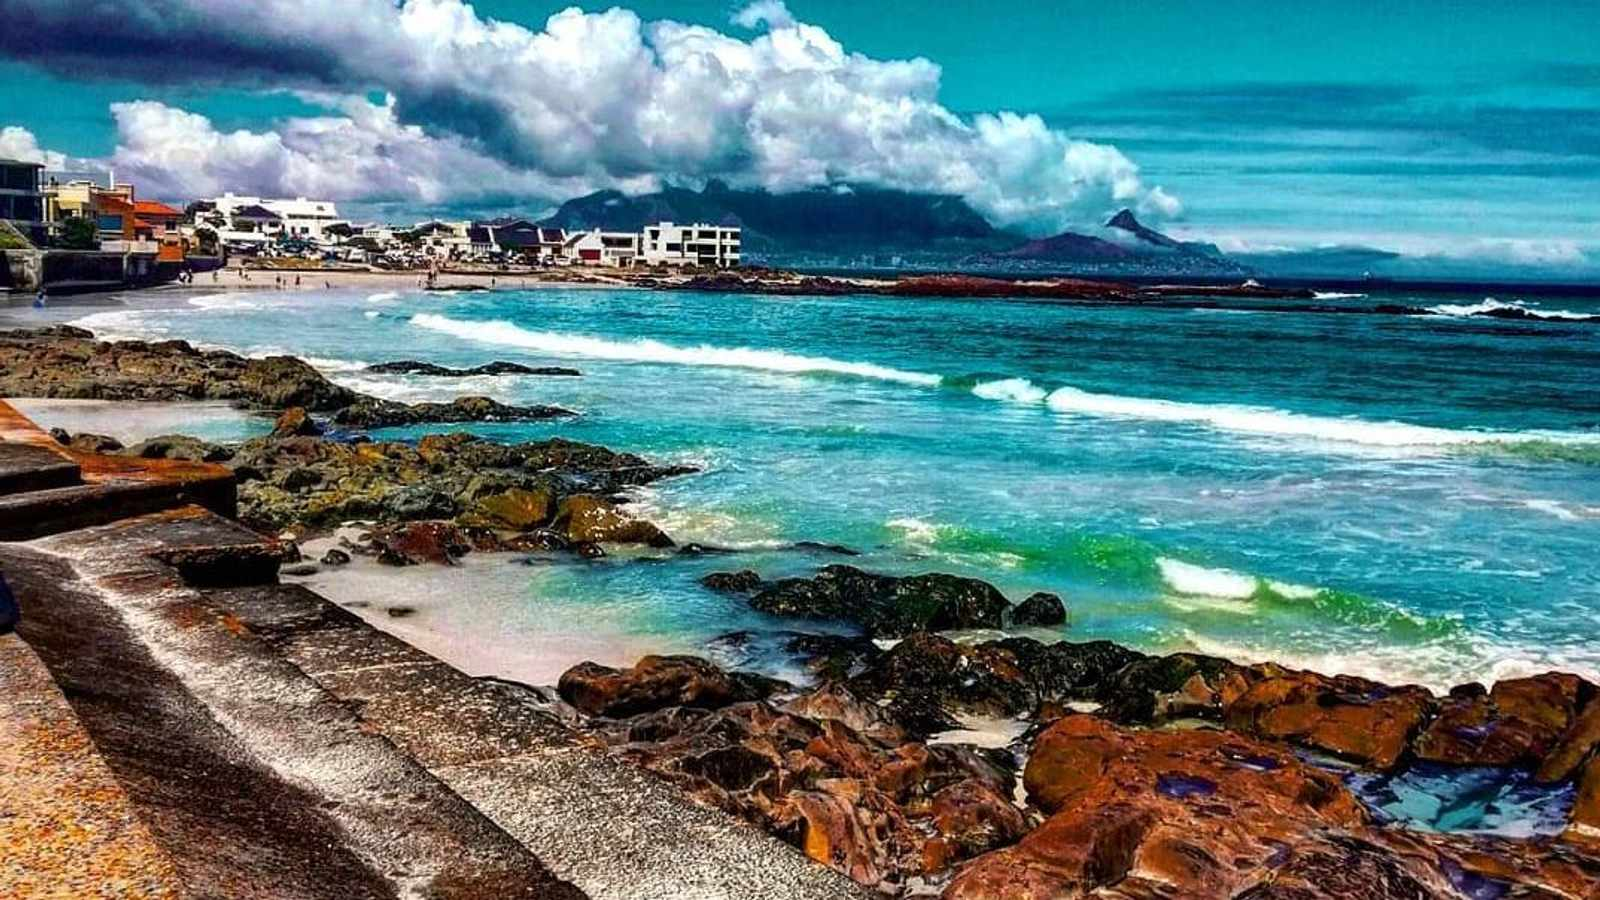 Cape Town voted best city in world by Telegraph readers